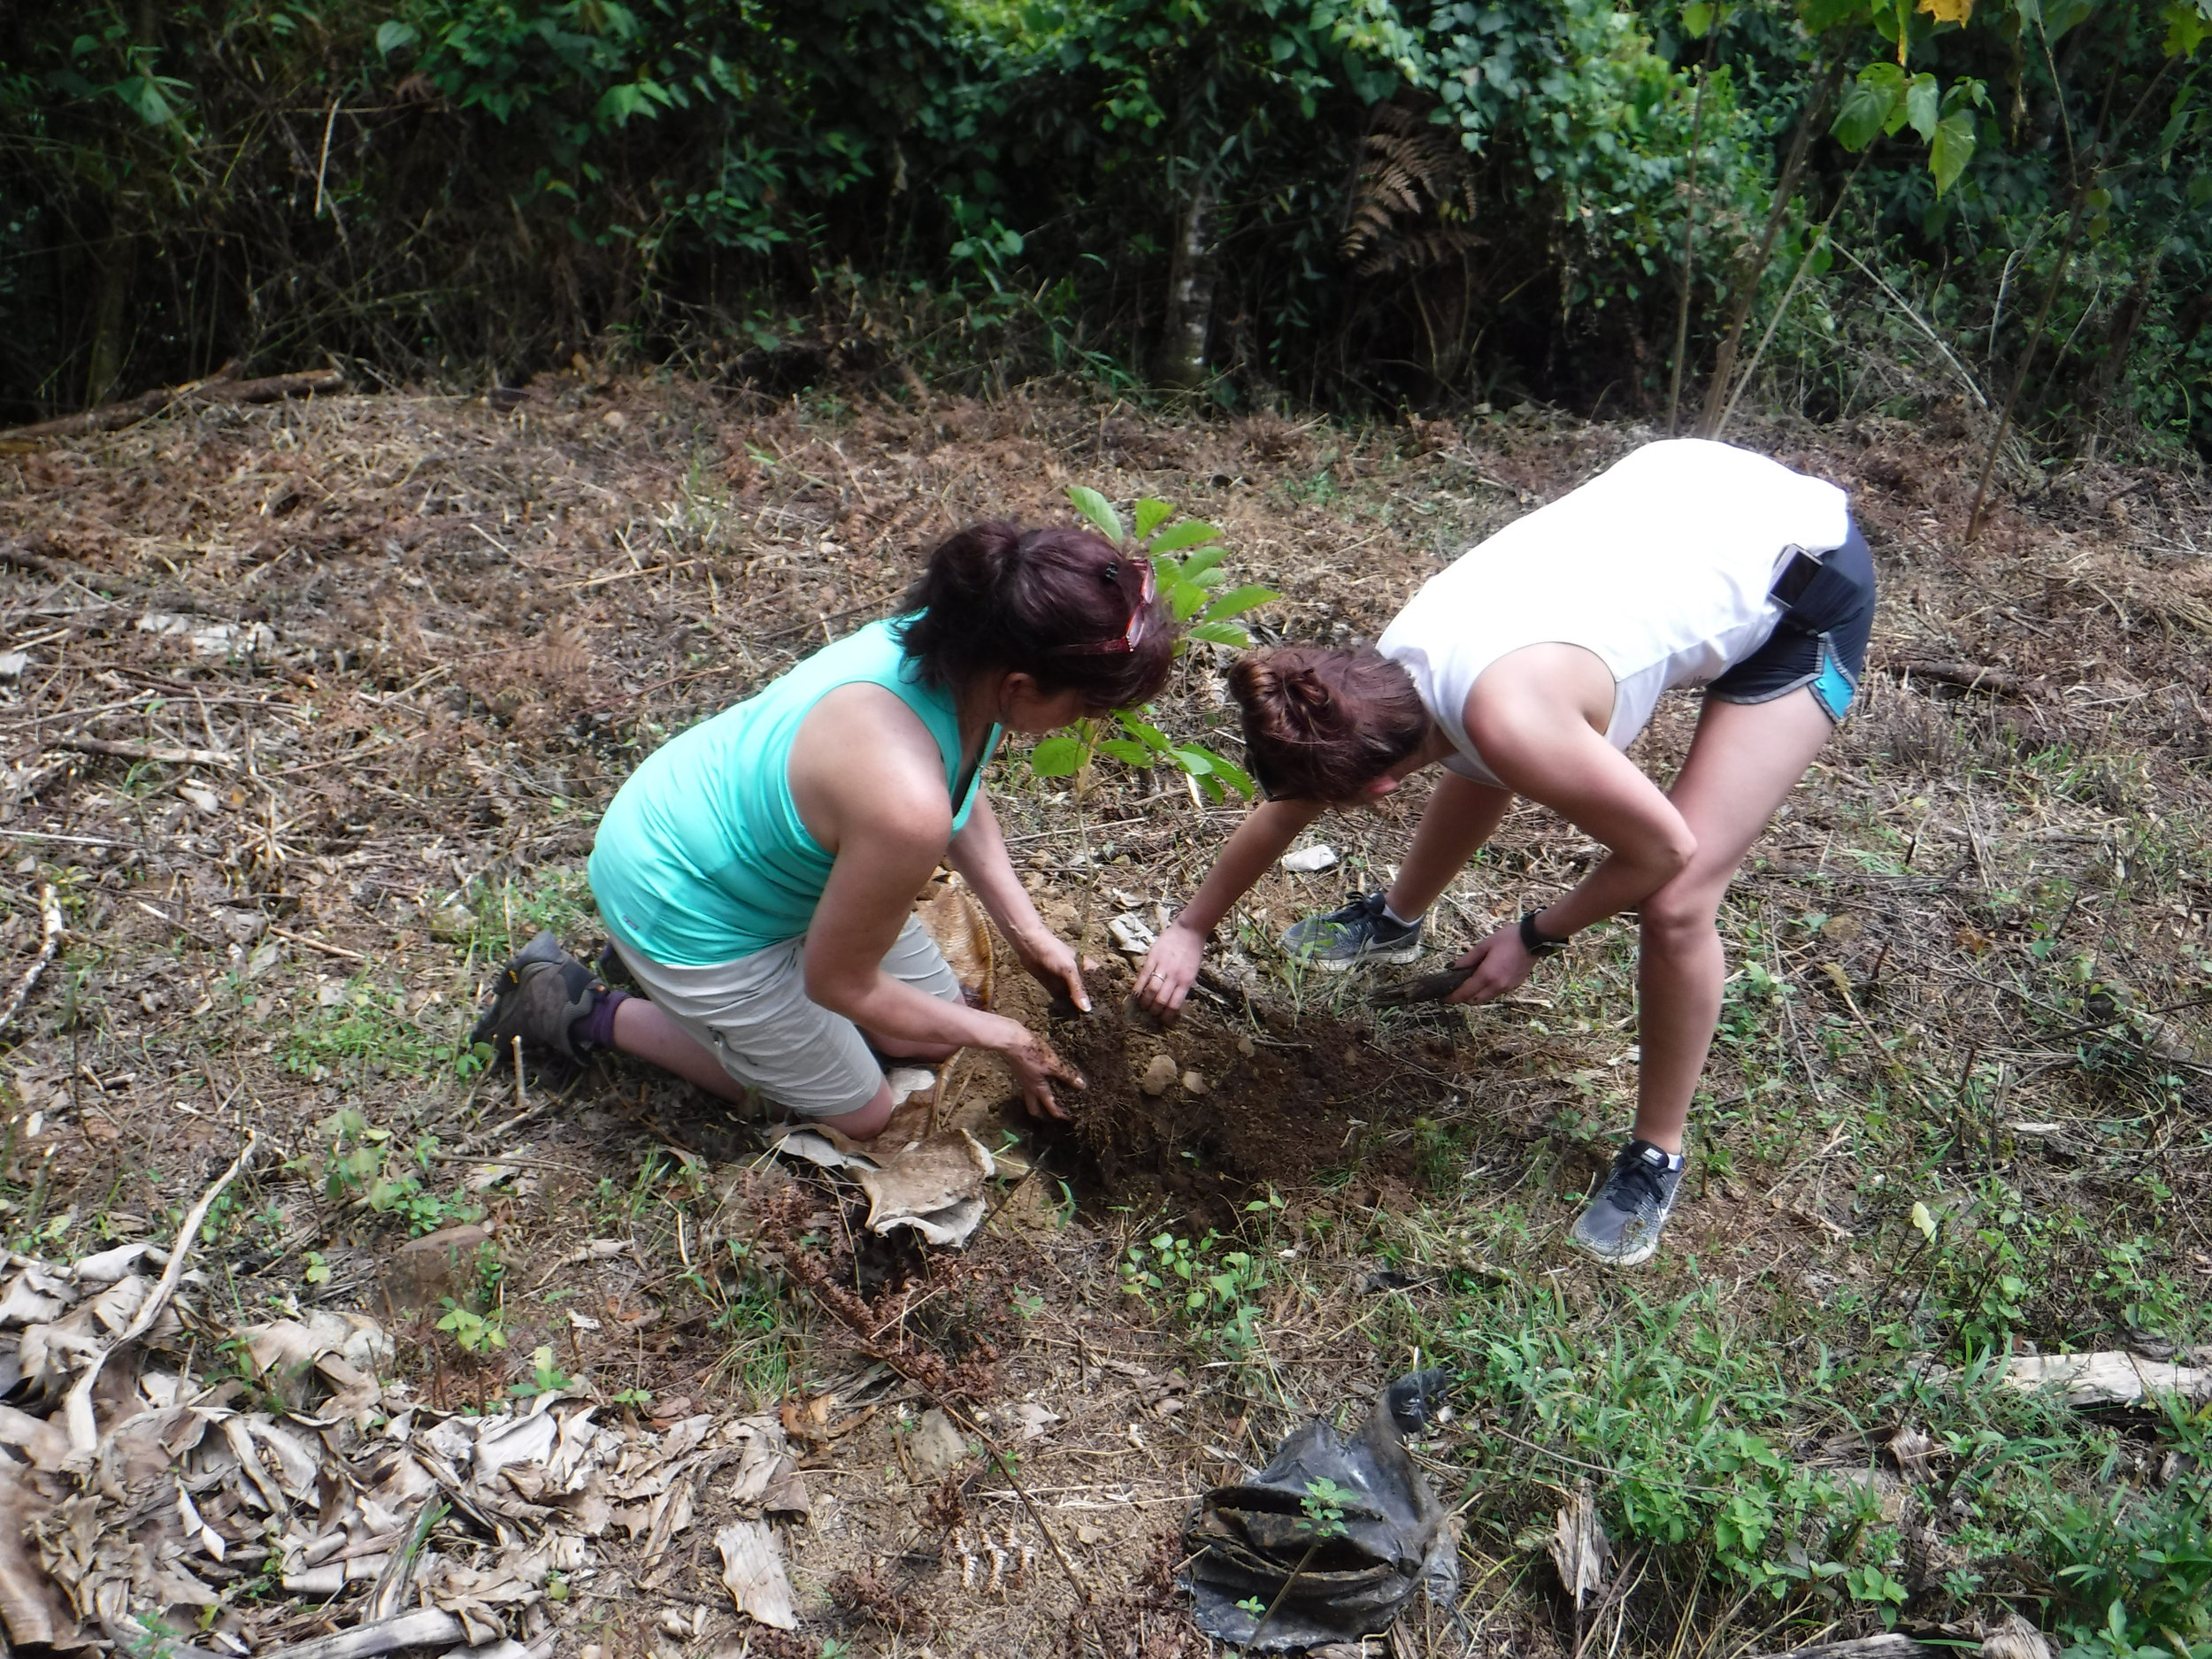 Our groups are a part of a local Reforestation & Conservation Project in Costa Rica. Eventually these trees will form a Biological Corridor and provide food, shelter and habitat to local wildlife. -